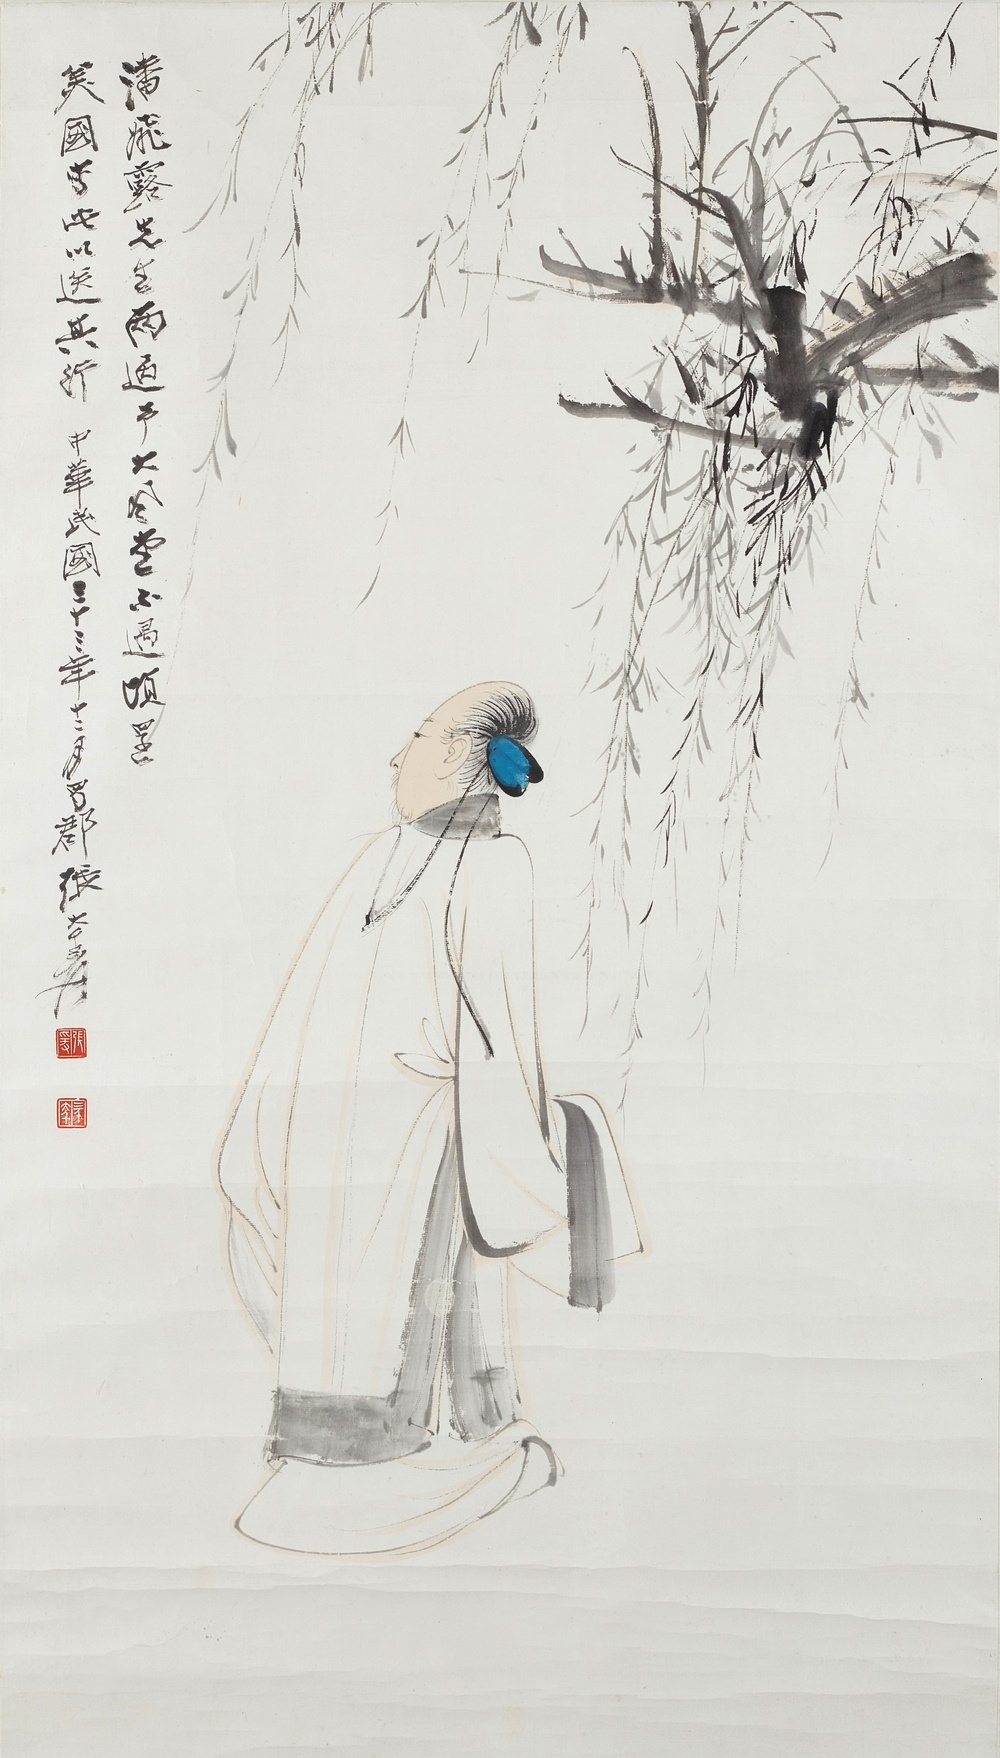 zhang daqian scholar under willow tree